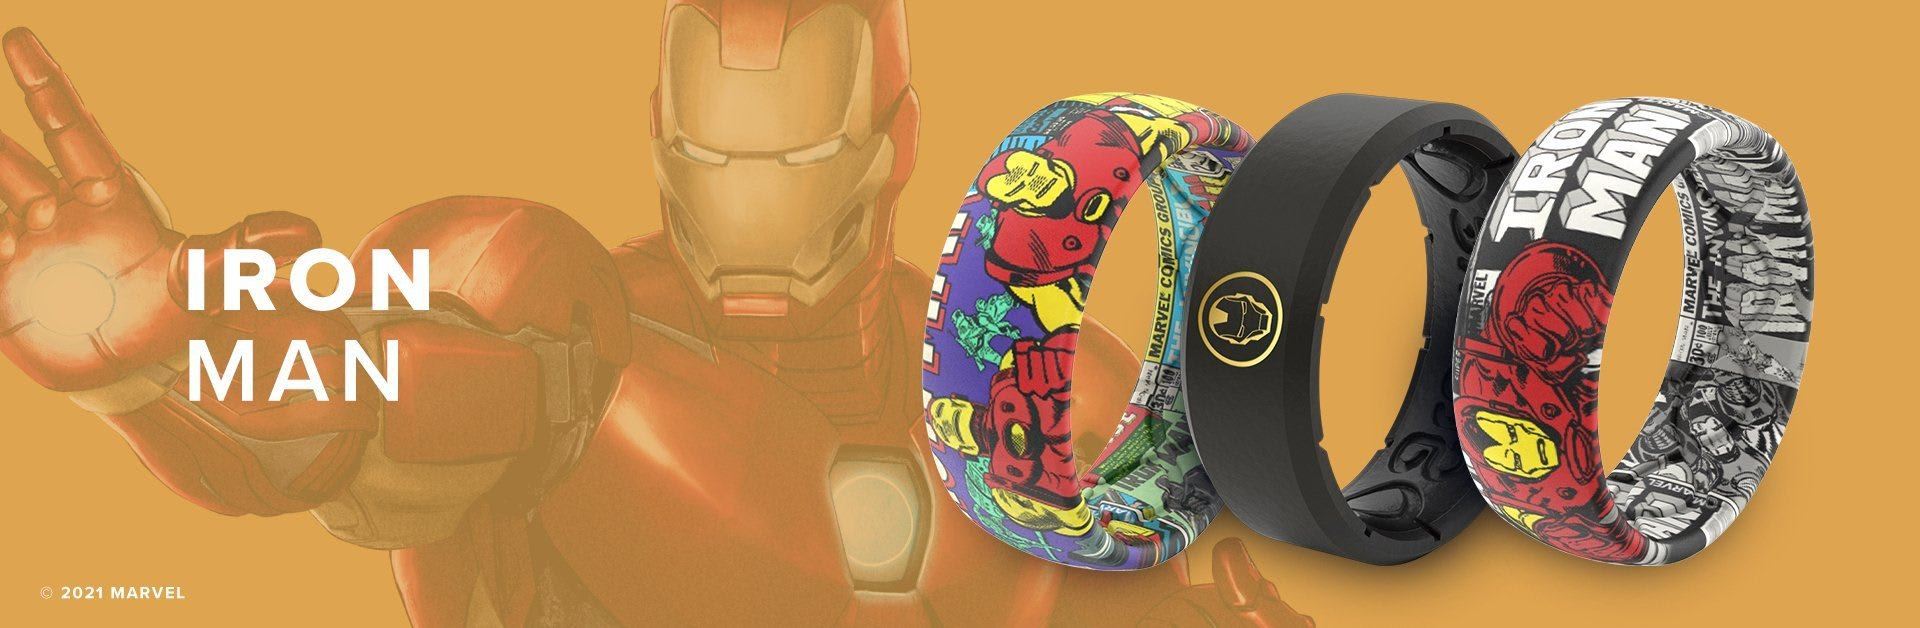 Iron Man, 3 Iron Man rings overlaid on orange background with a faint Iron Man in the background